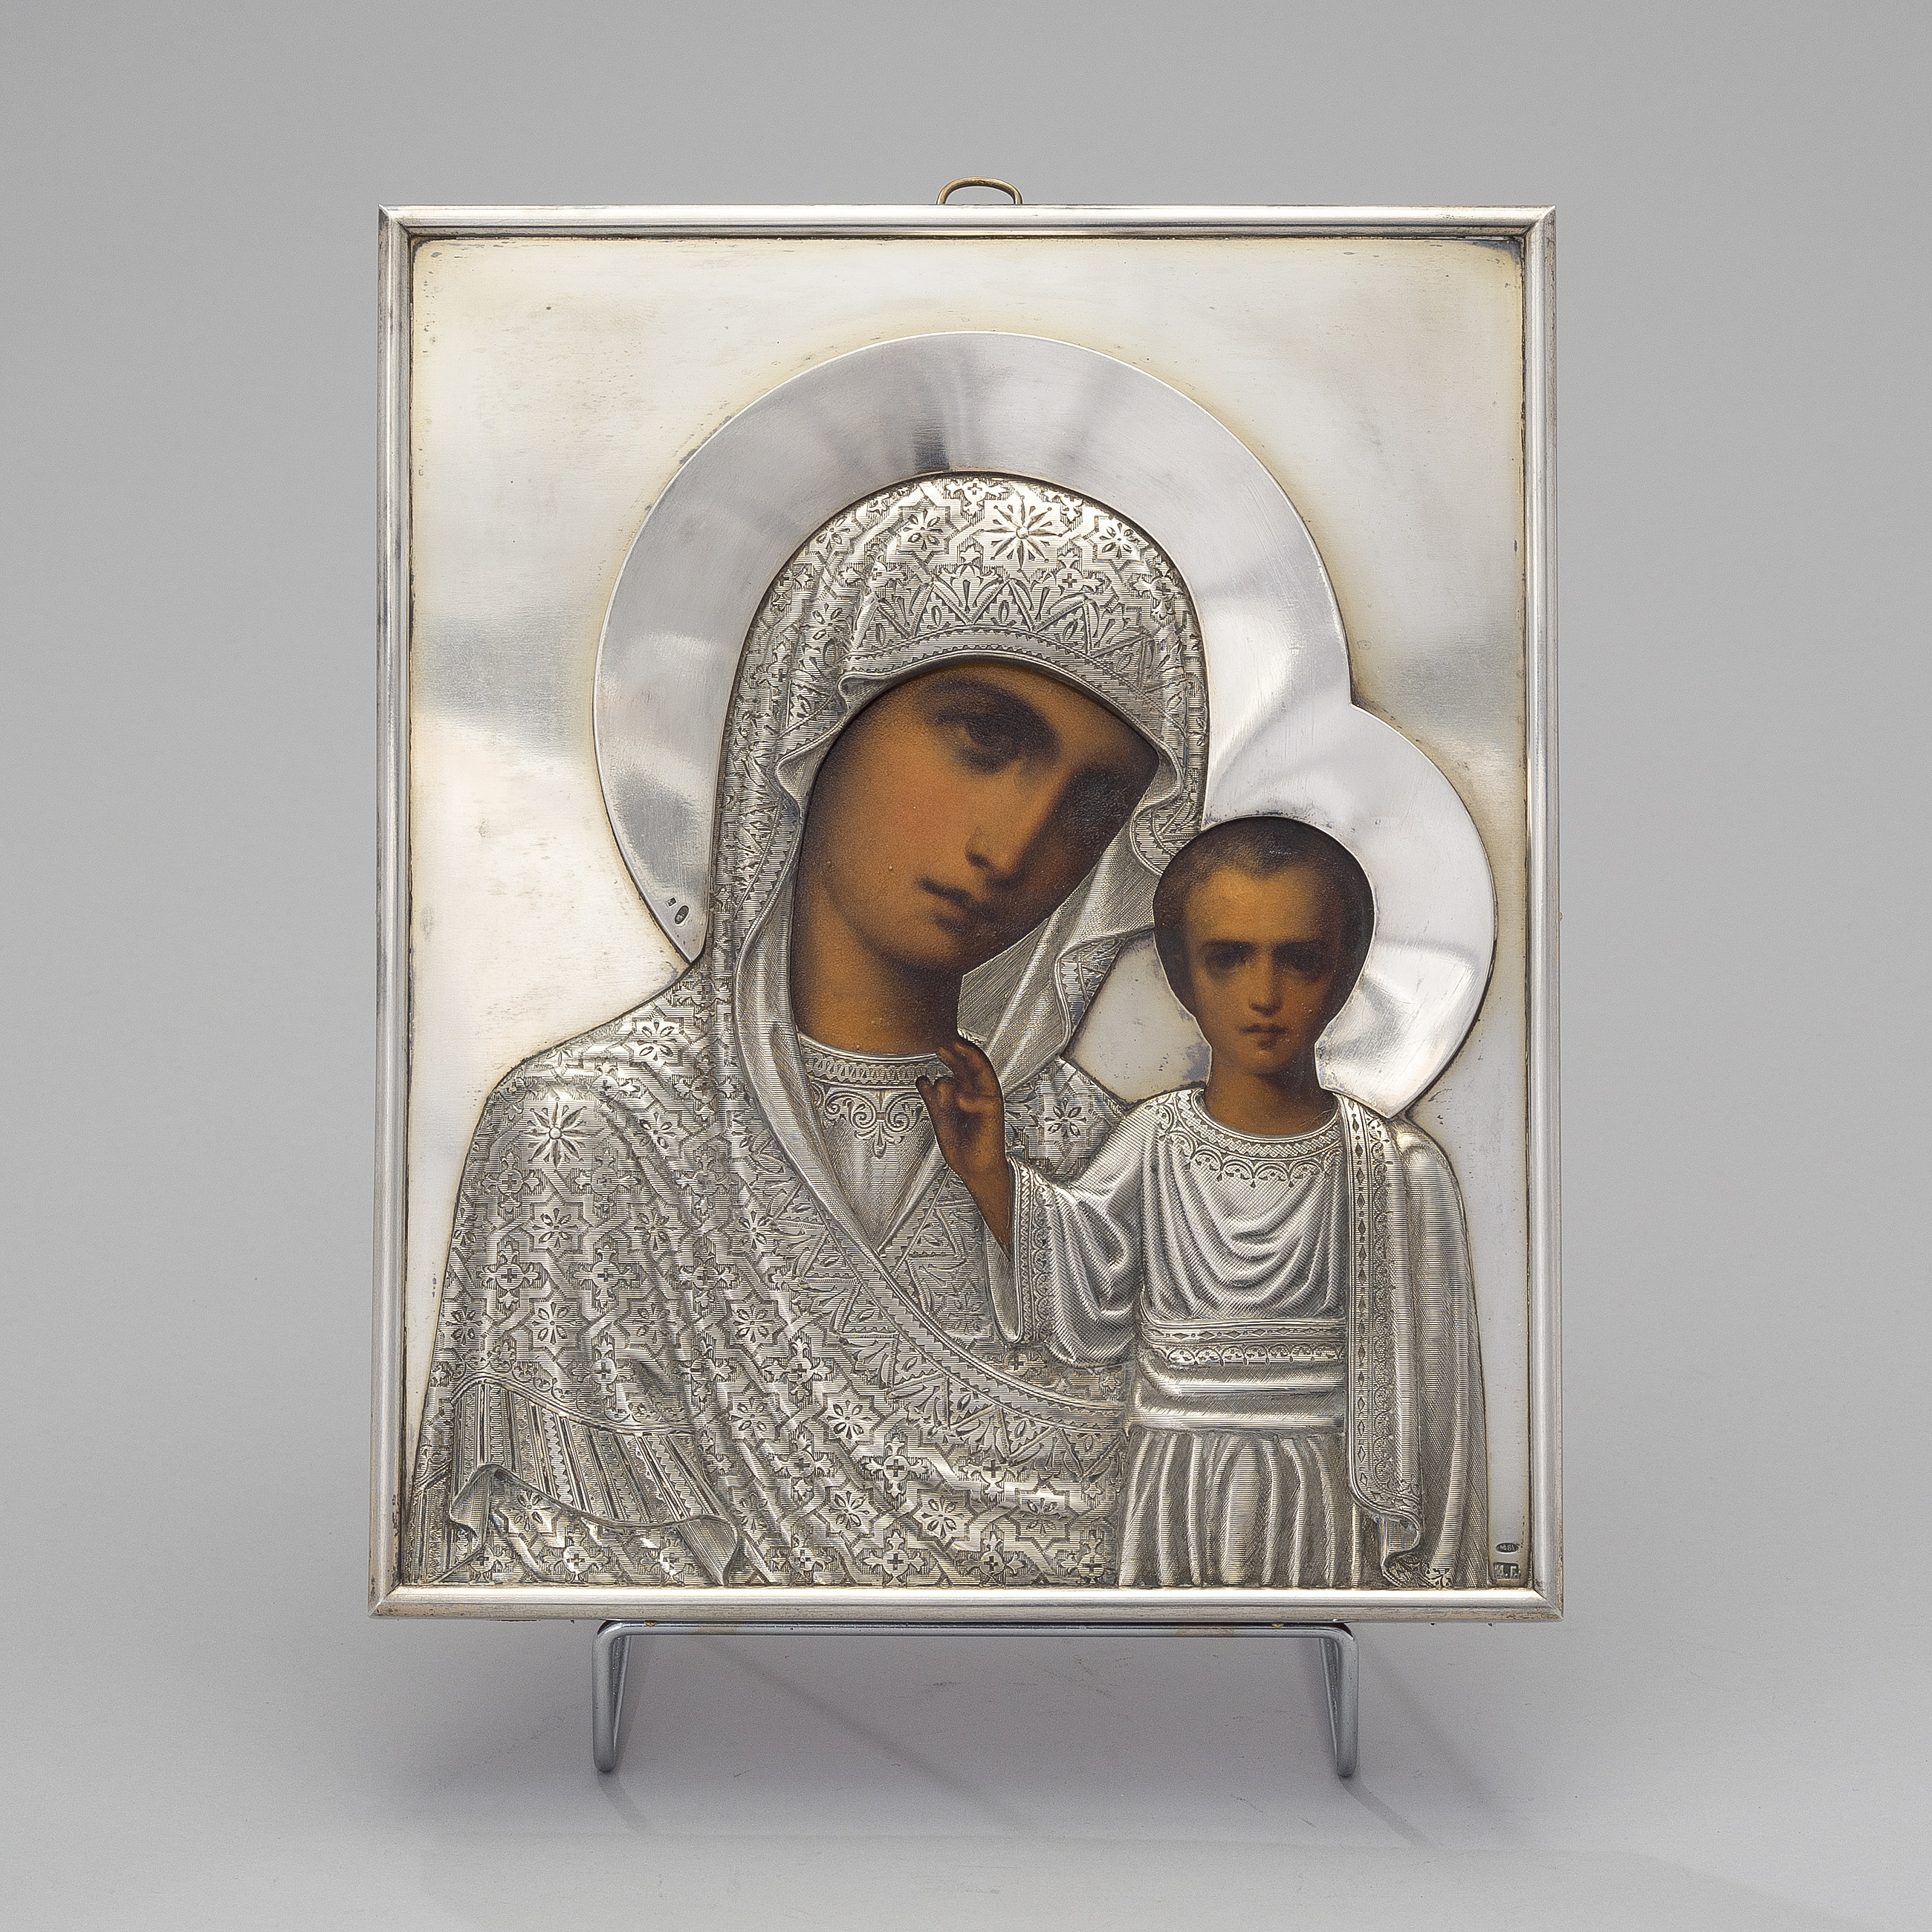 A Russian icon with silver riza of Imperial Purveyor Morozov